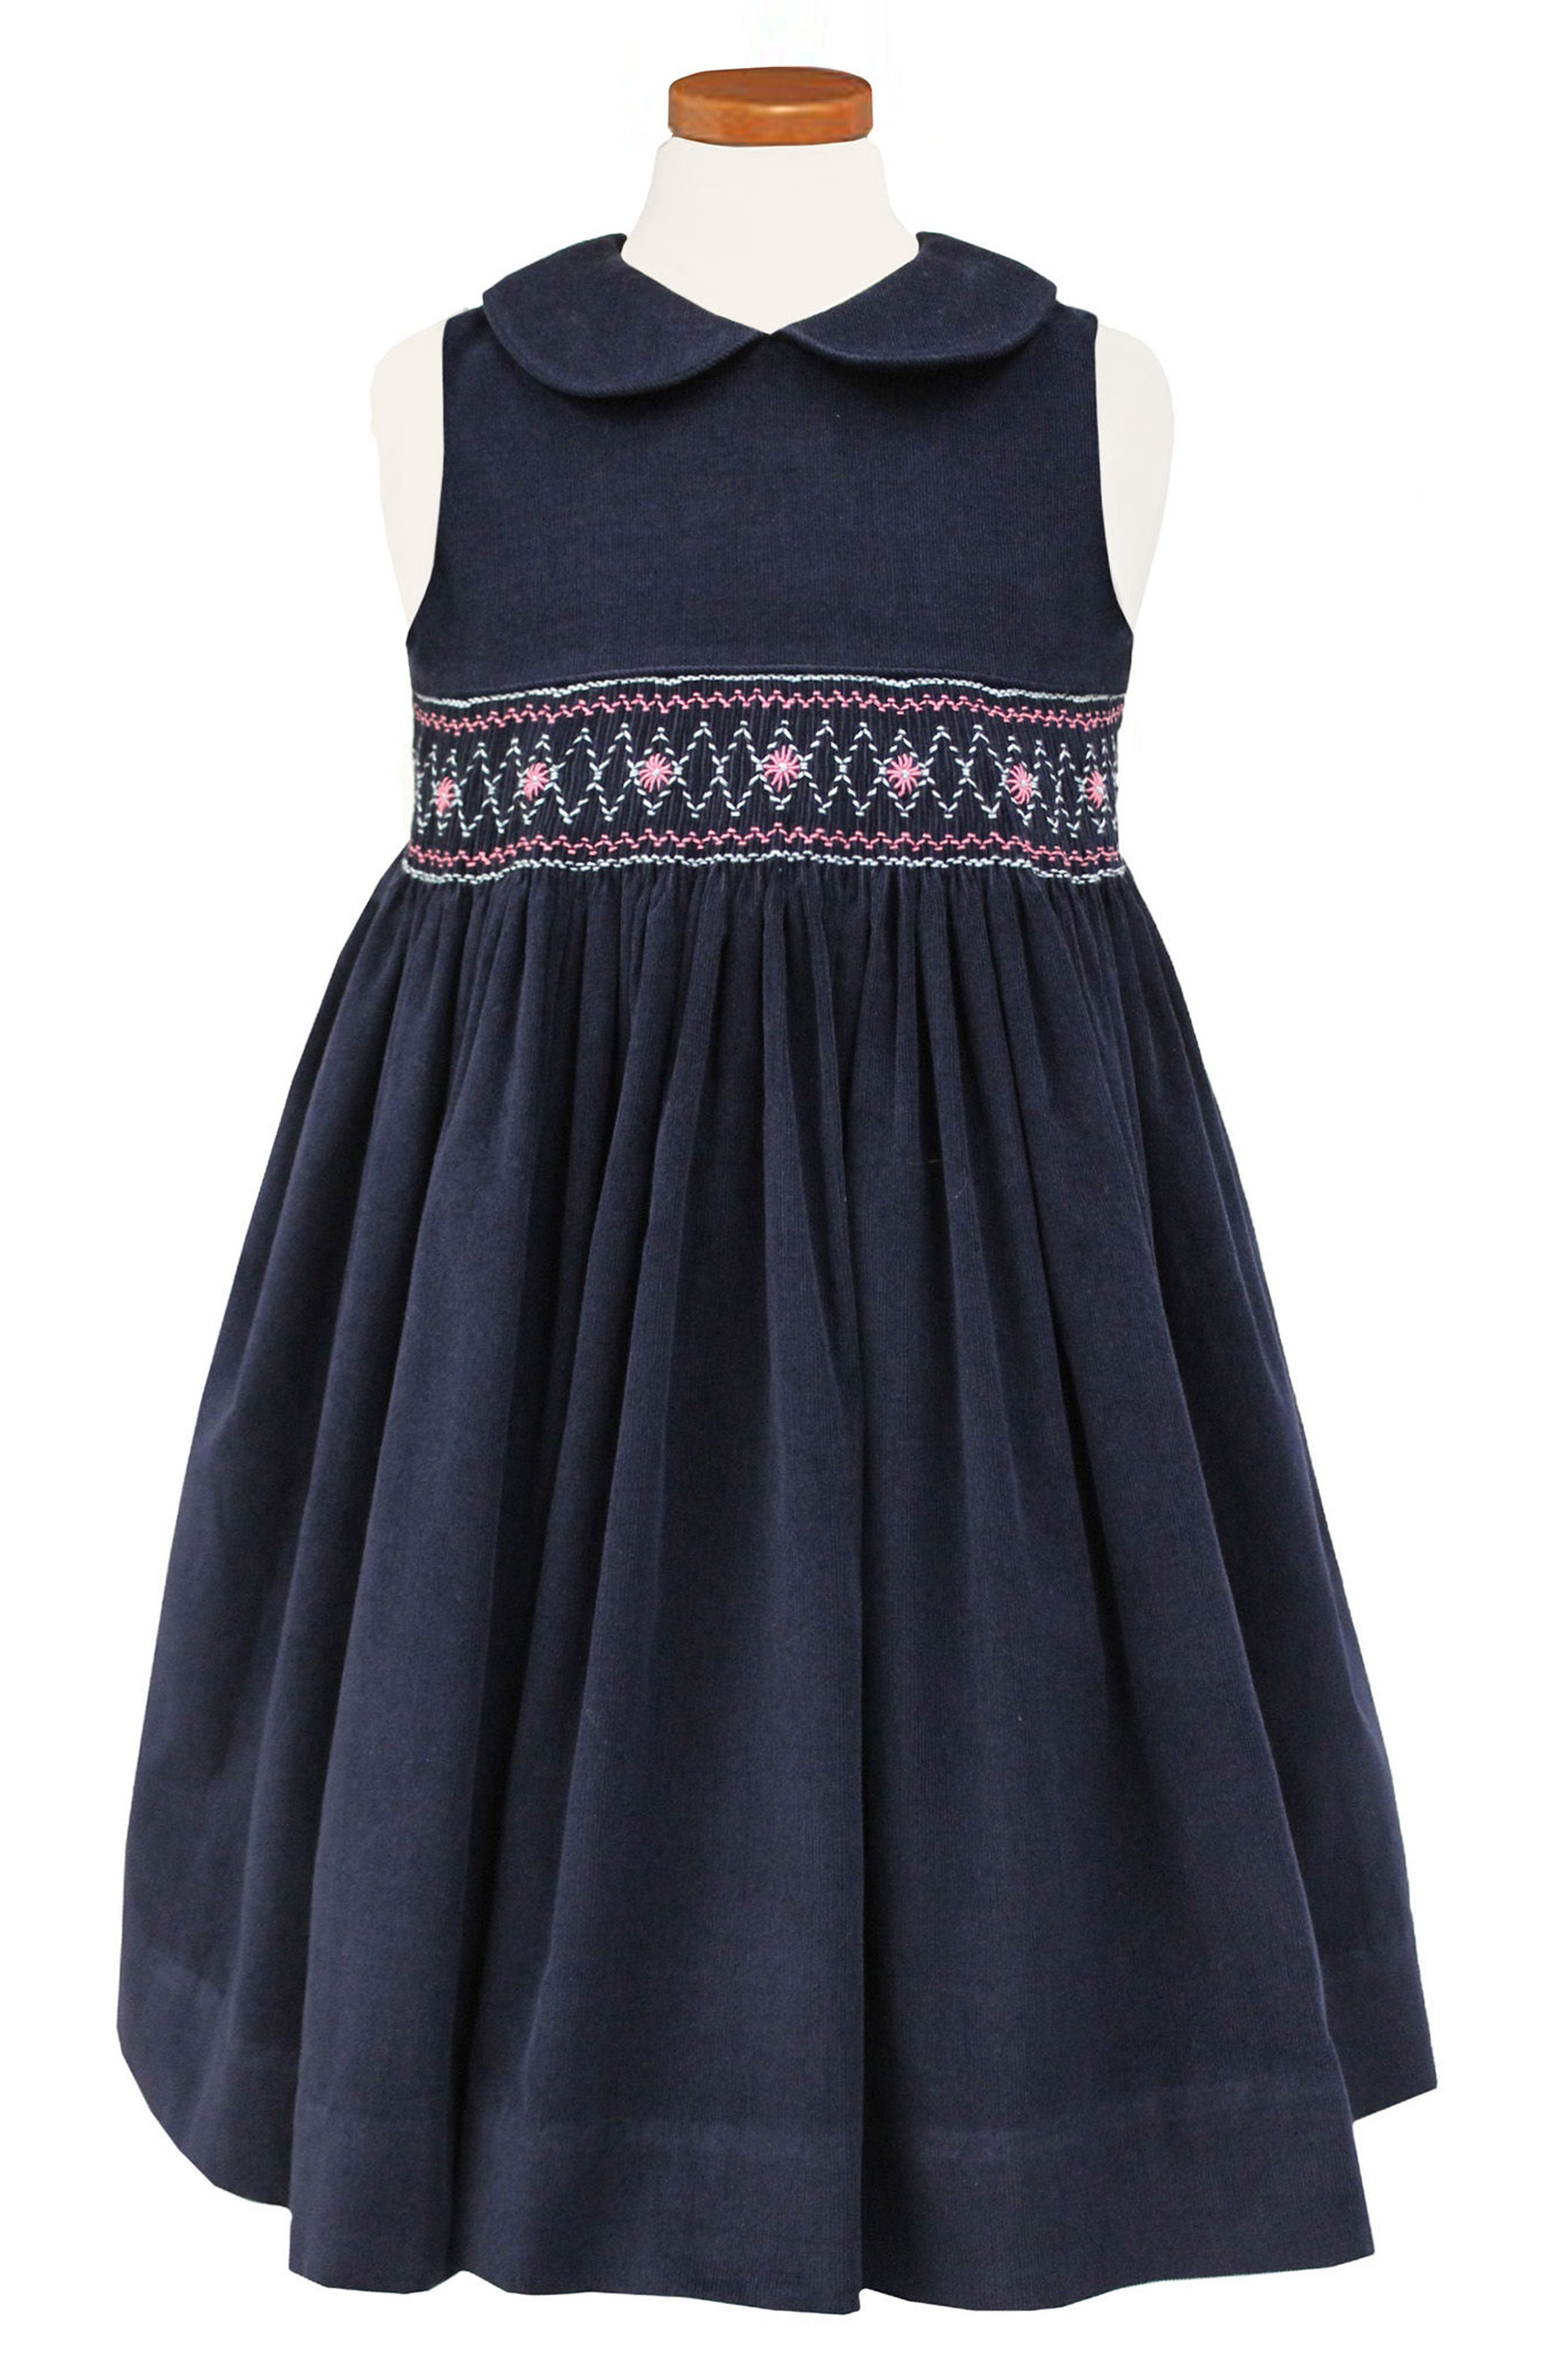 Embroidered Smocked Waist Dress,                             Alternate thumbnail 3, color,